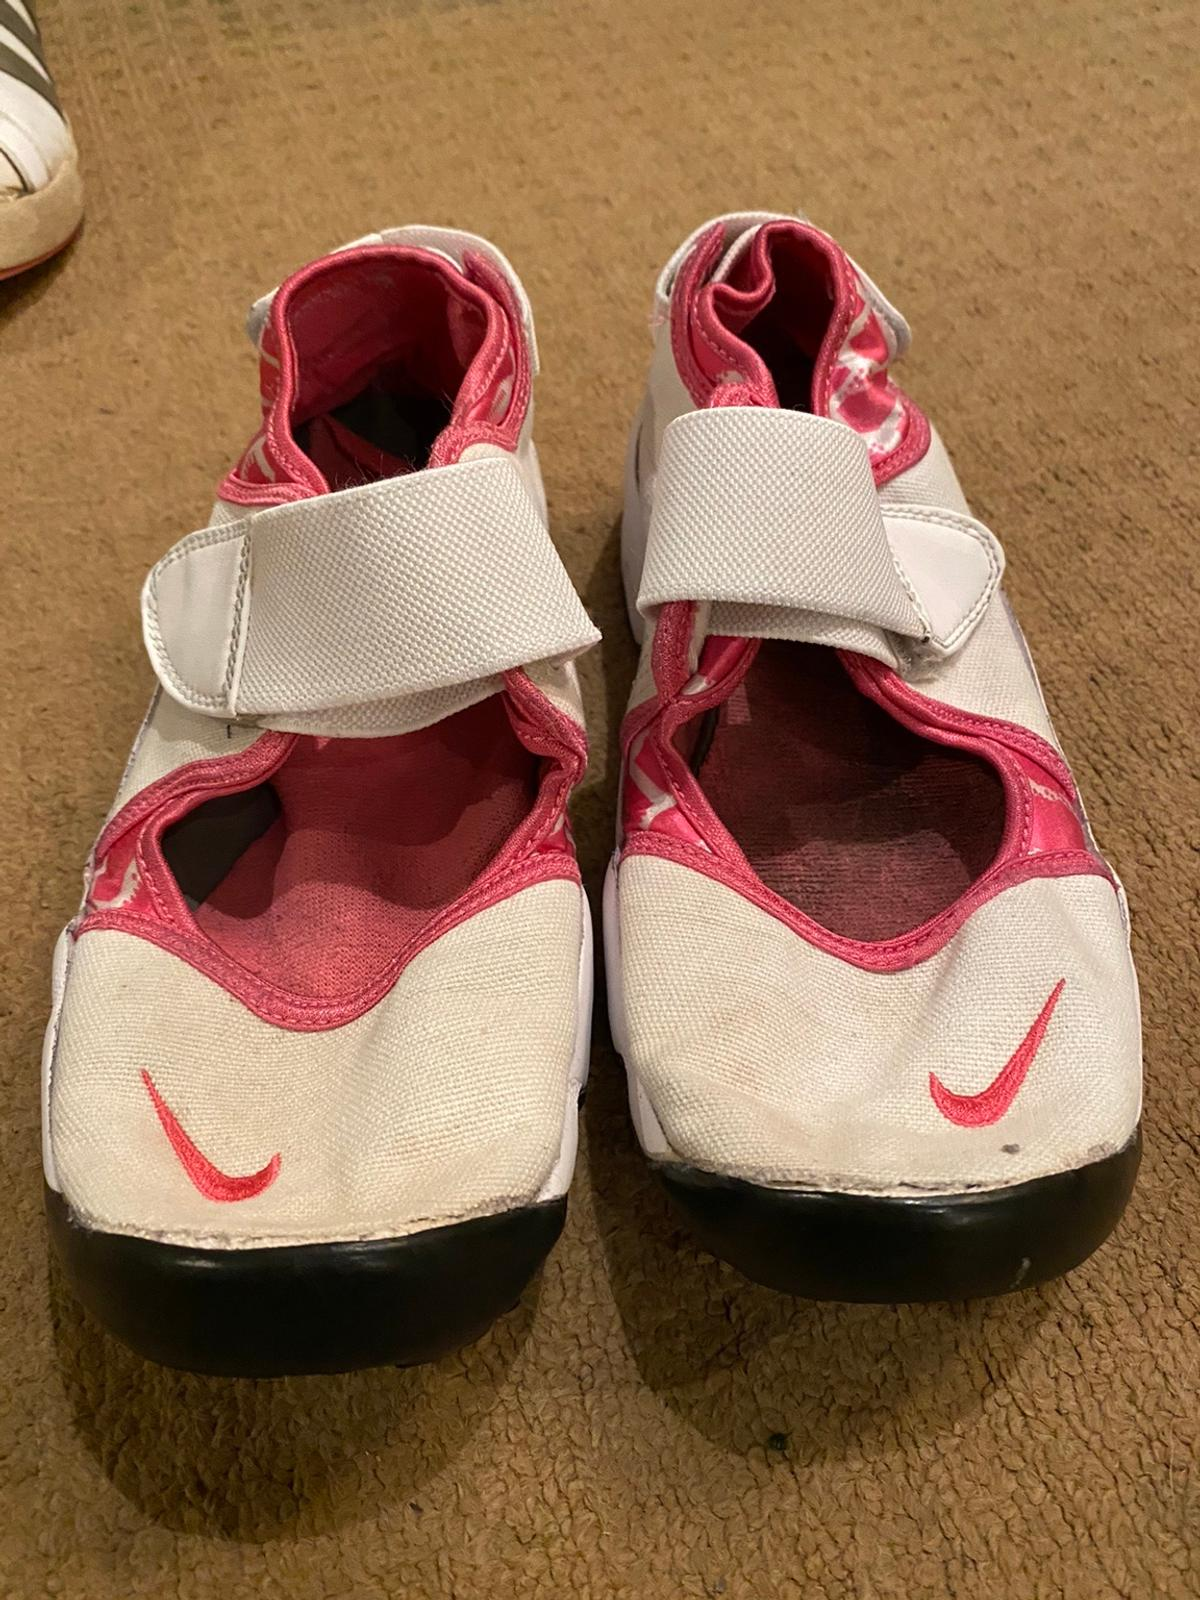 Nike size uk5.5 , white and pink. Velcro fastening. Worn but still plenty of life left in them.